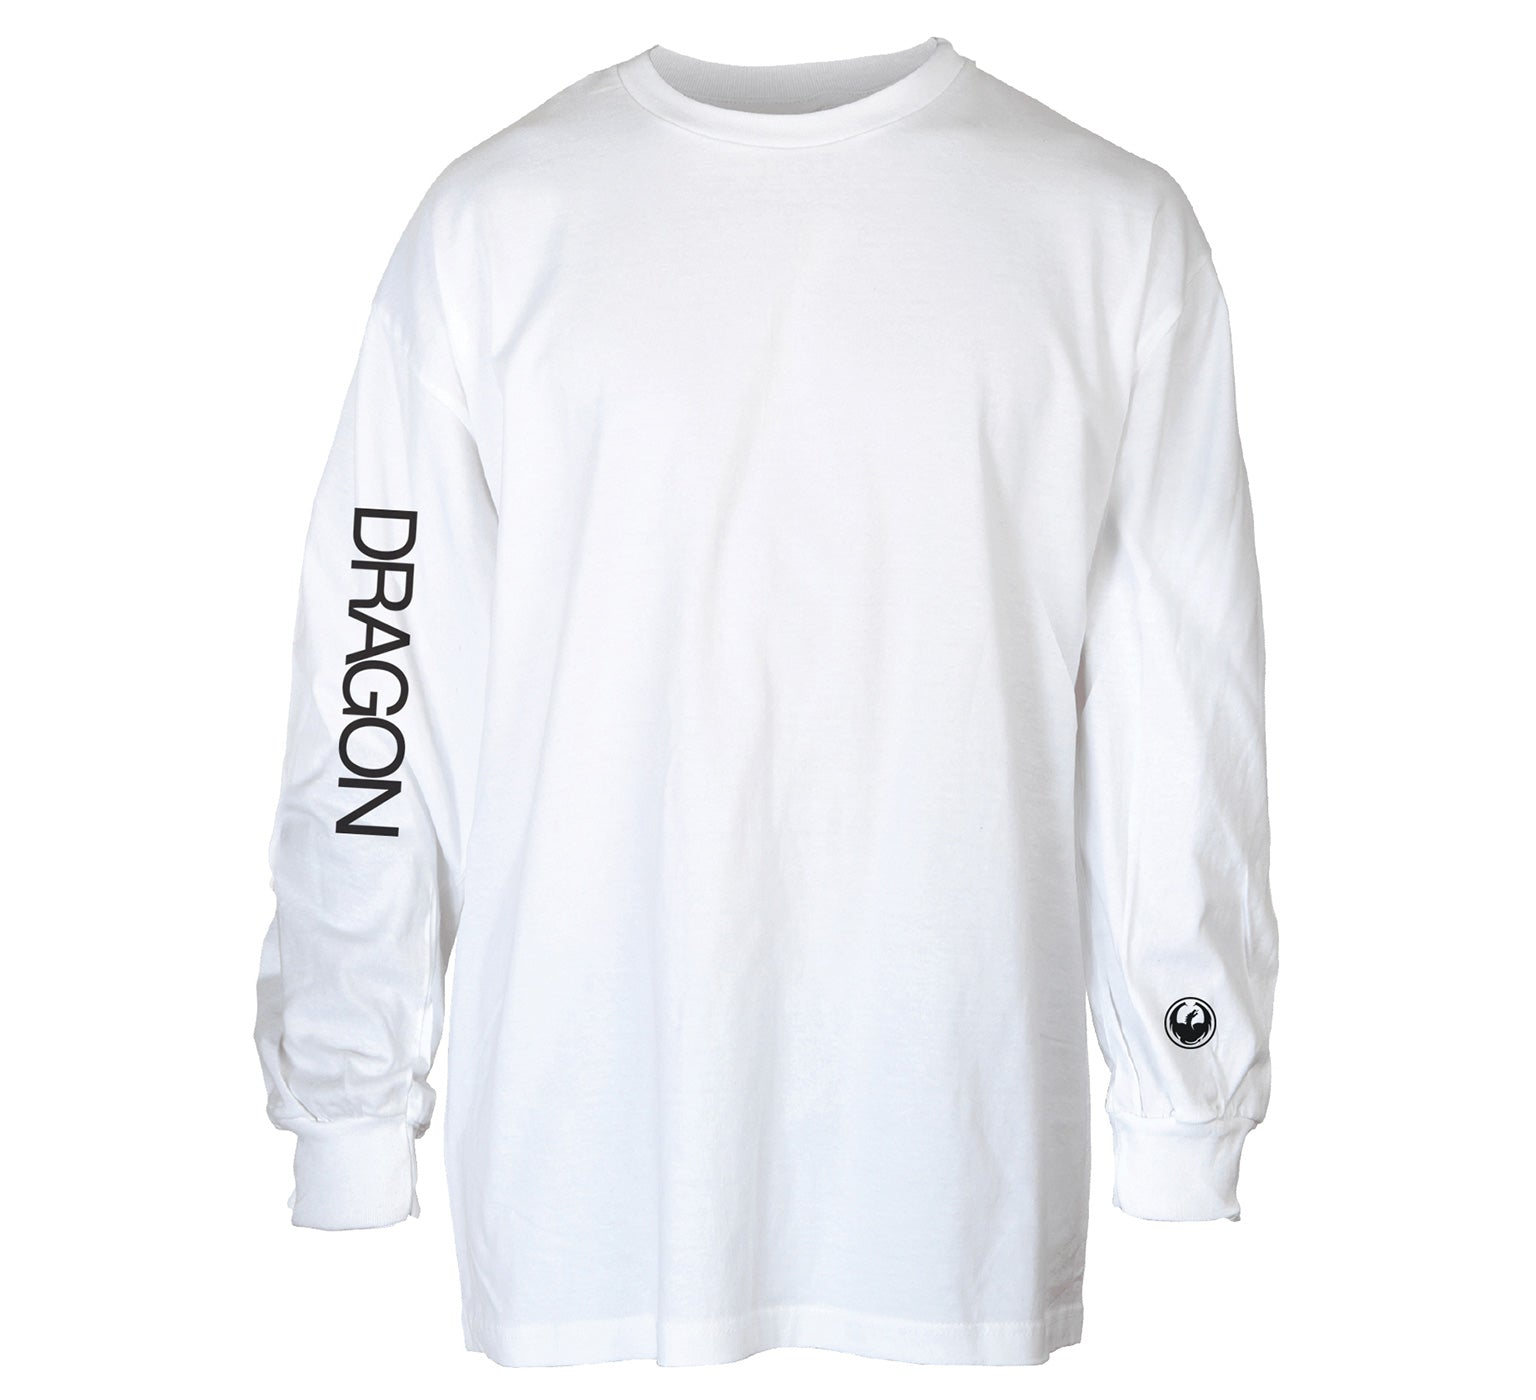 Trademark Coin Long Sleeve Tee Staple Line